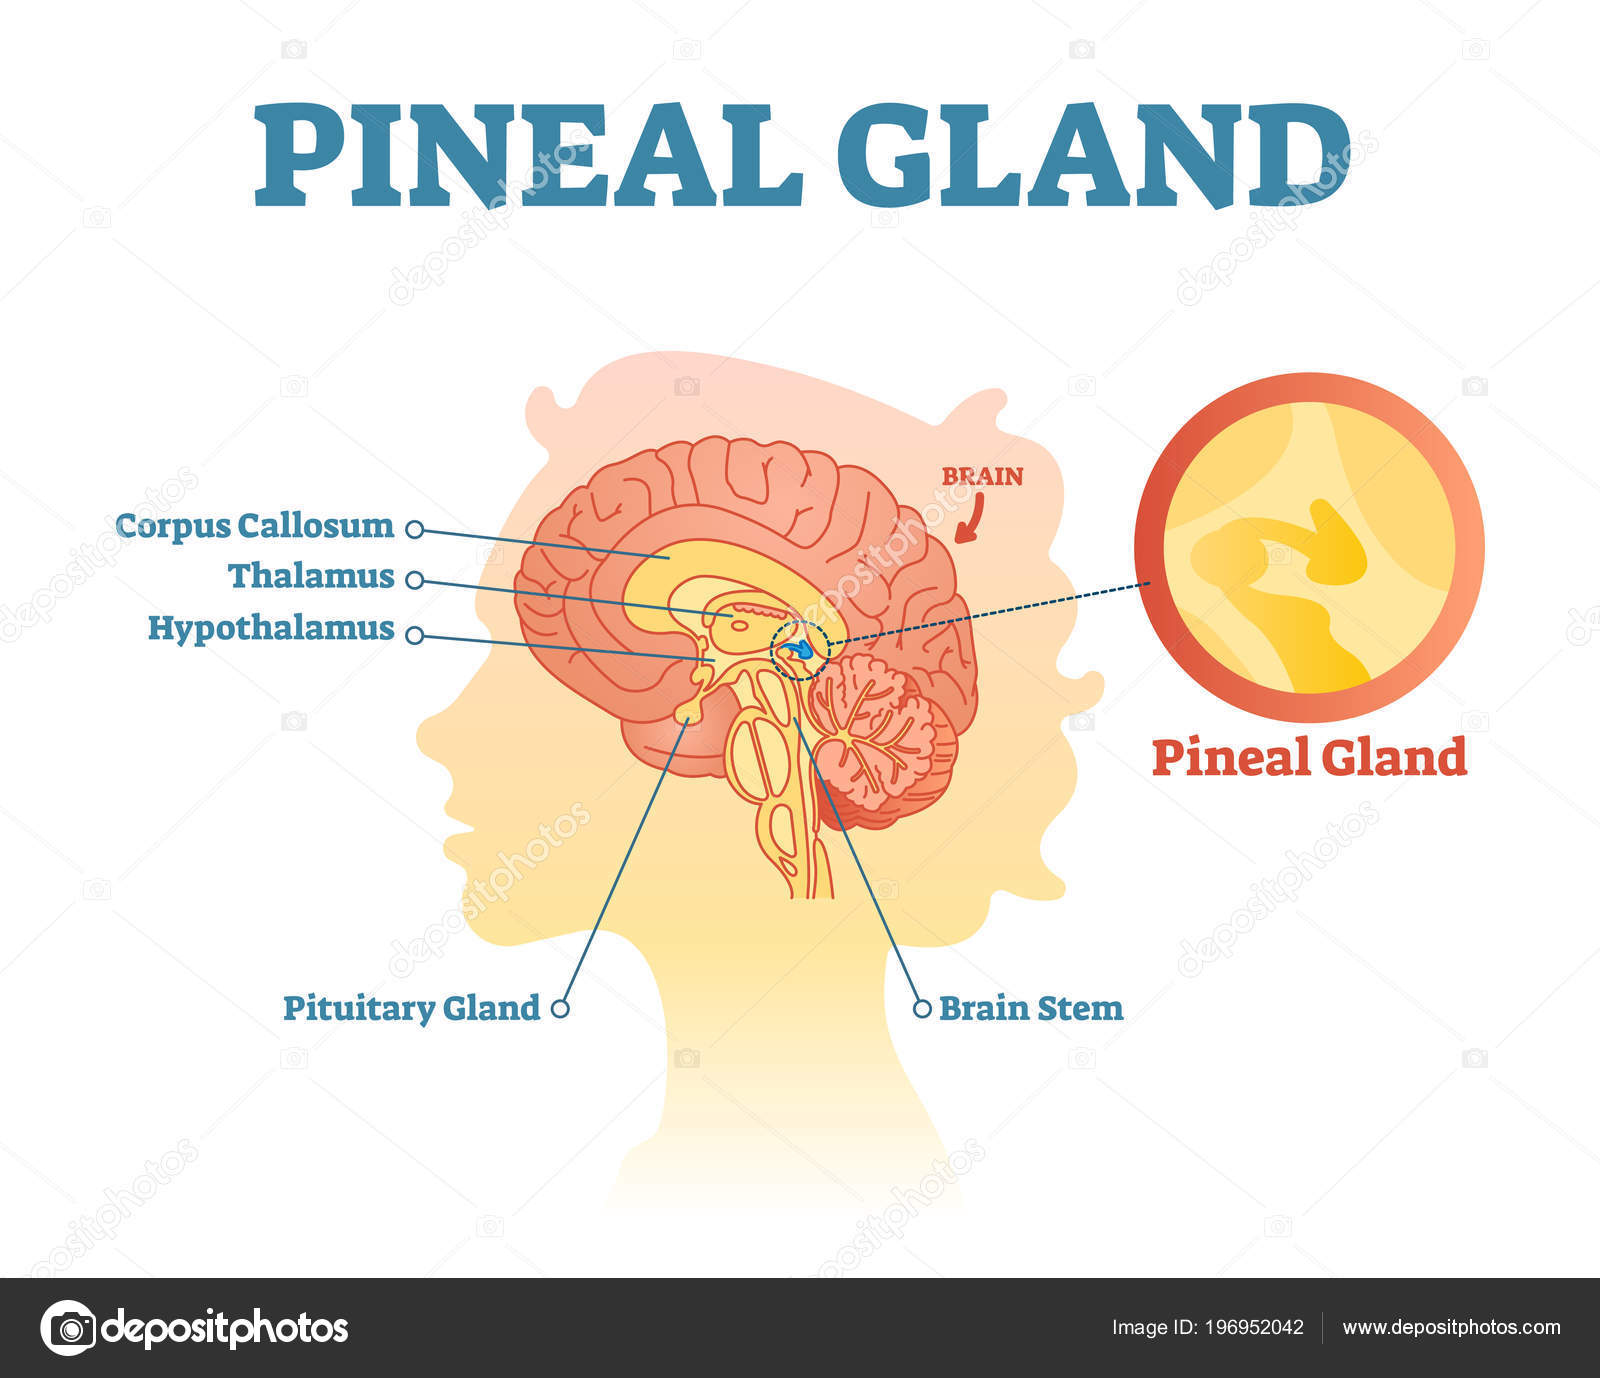 Pineal gland anatomical cross section vector illustration diagram ...